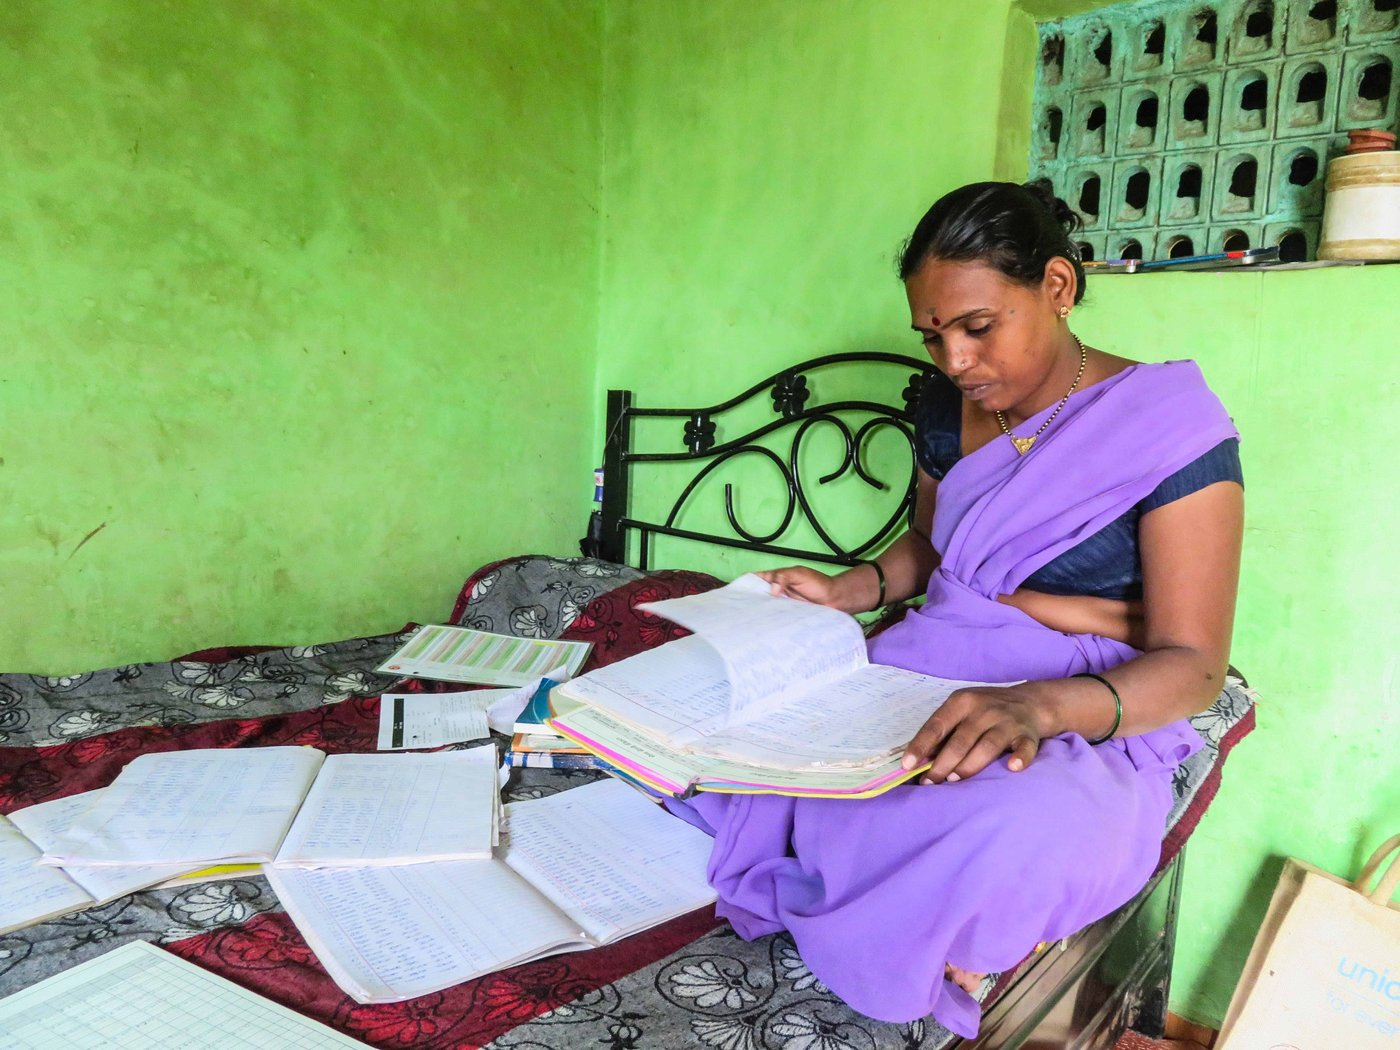 Chandrakala Gangurde going through paper works.